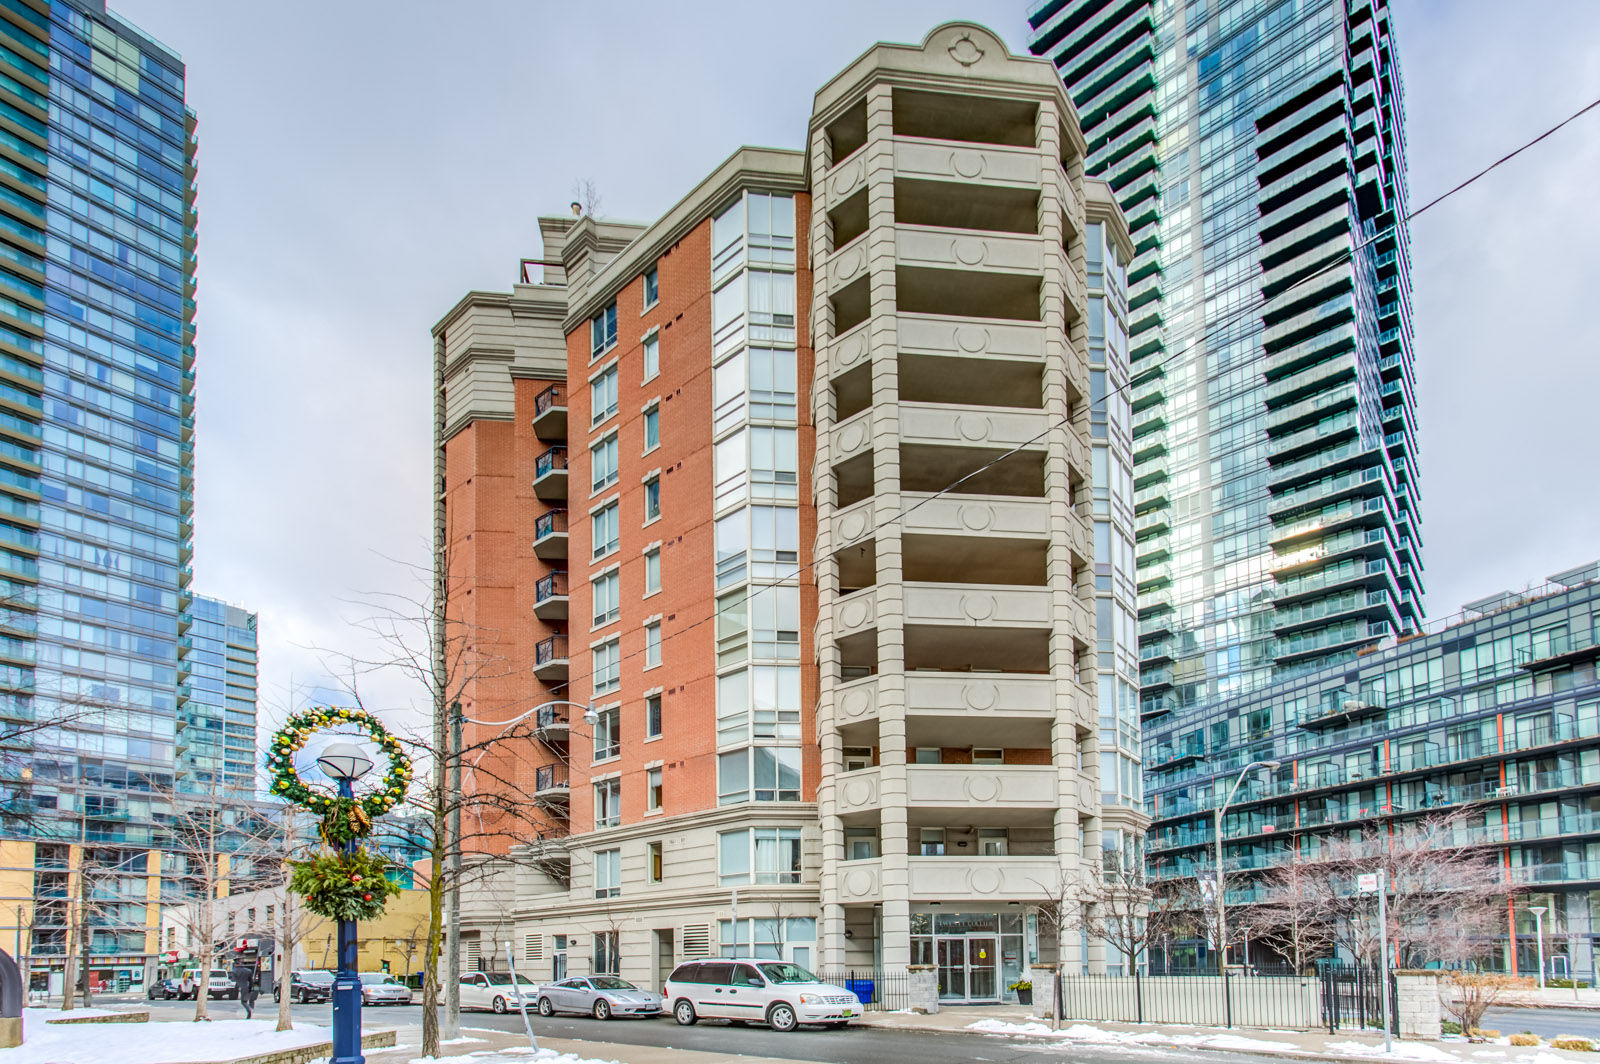 View of 20 Collier St, a 13-storey boutique condo of redbrick and gray stone.